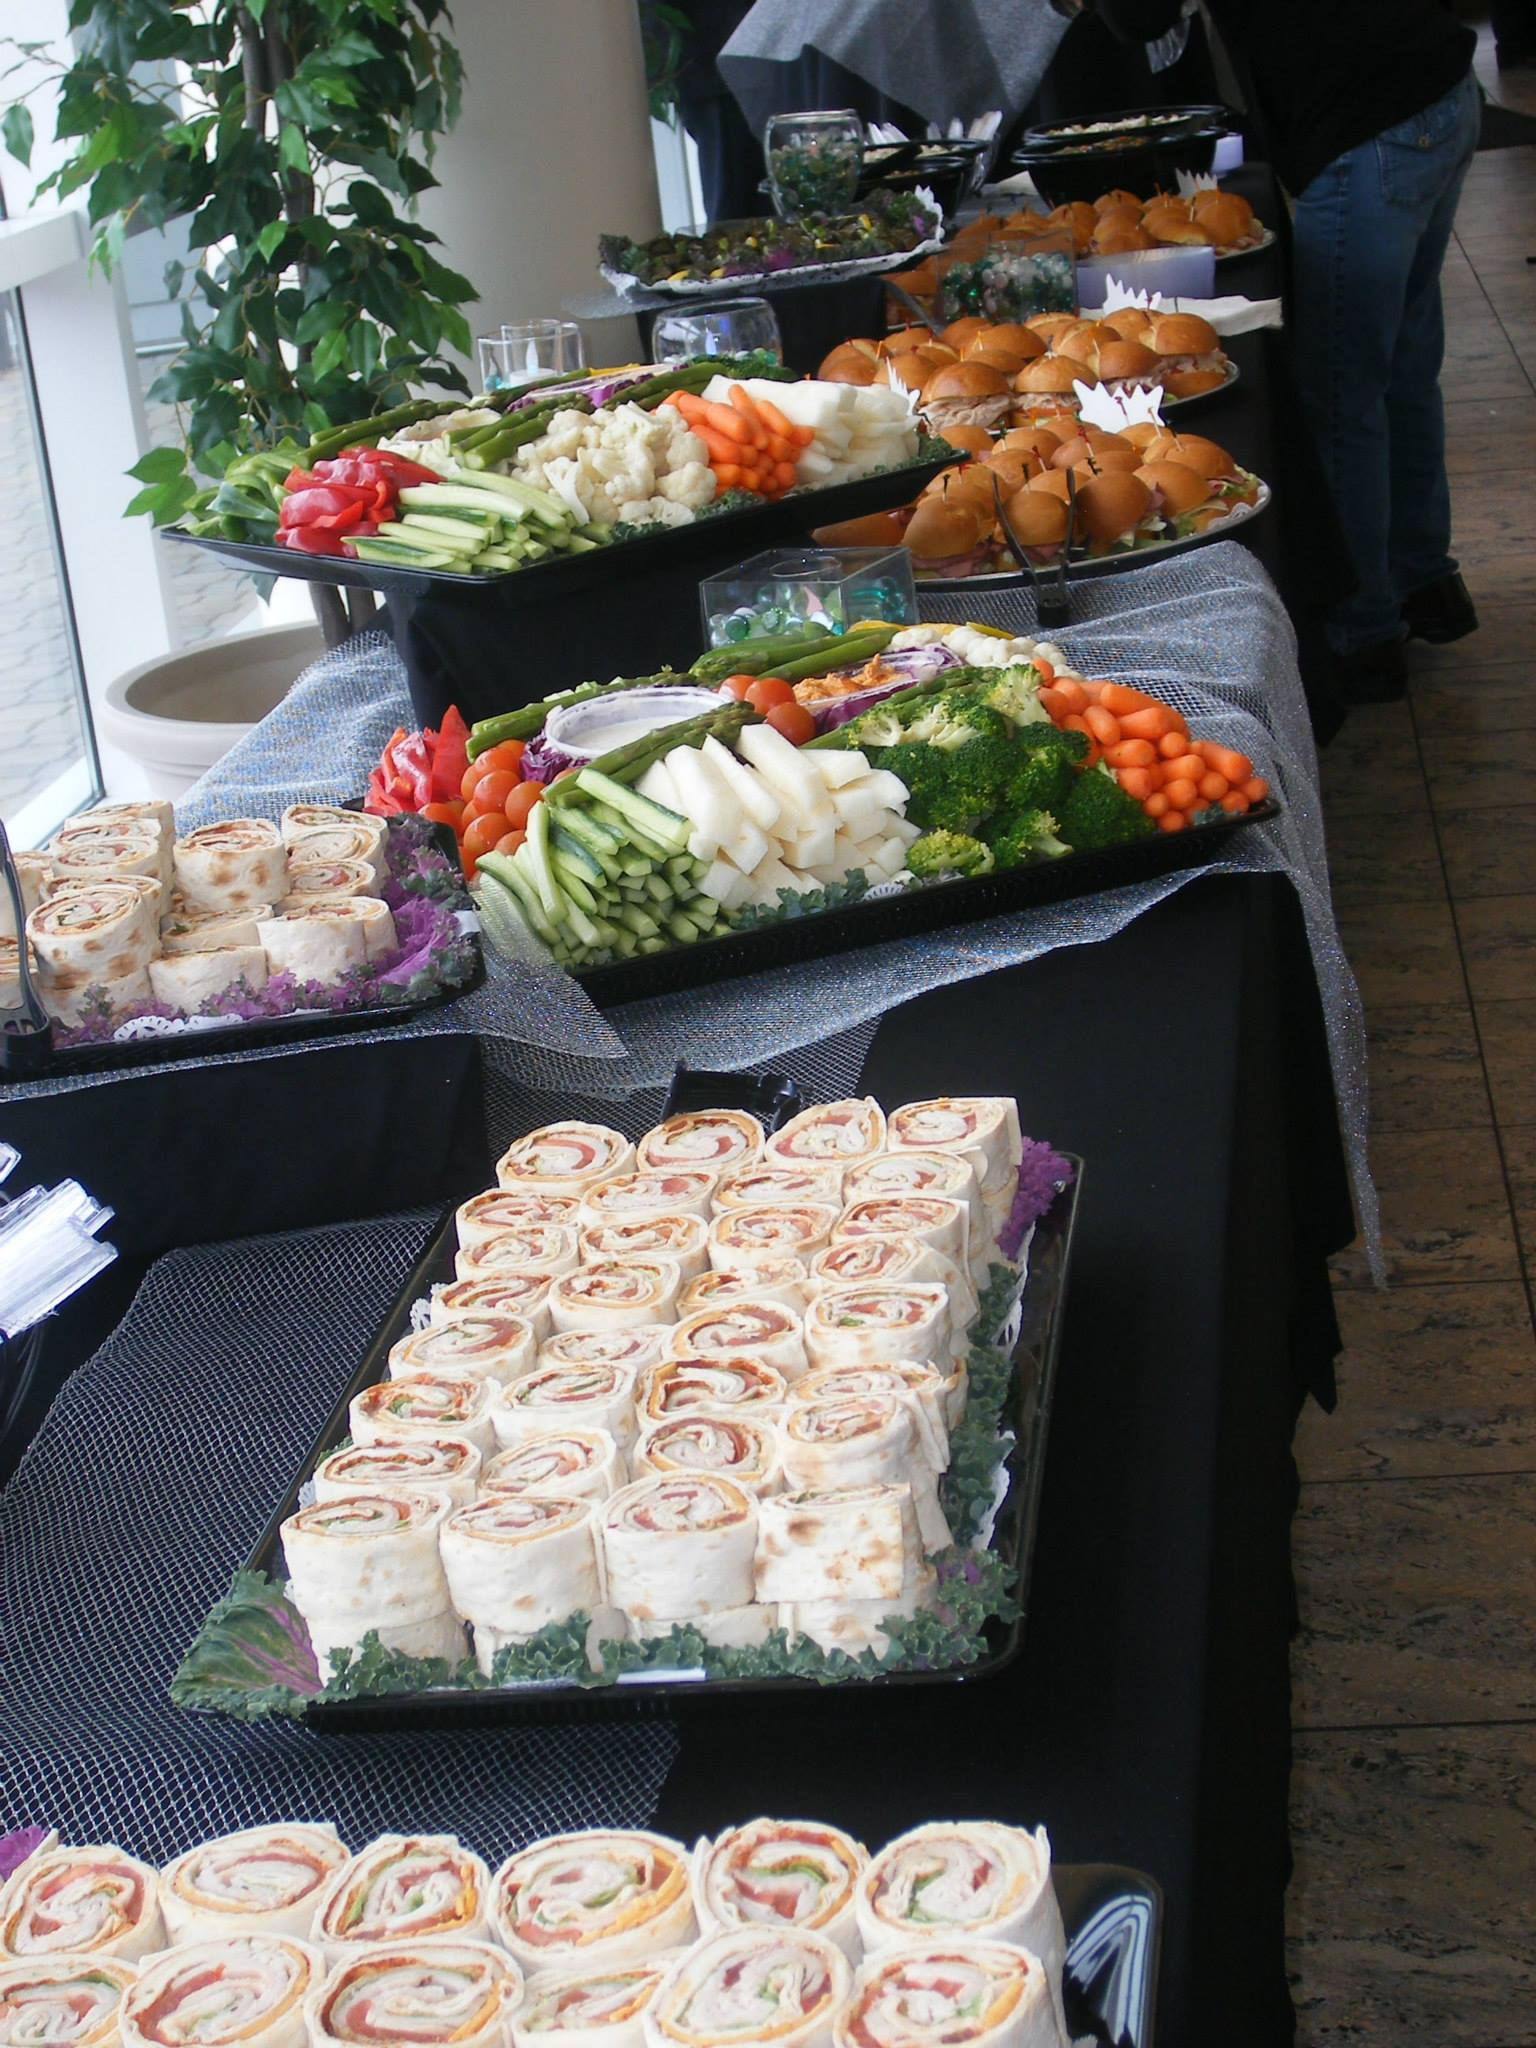 Catering featuring lavash wraps and veggies